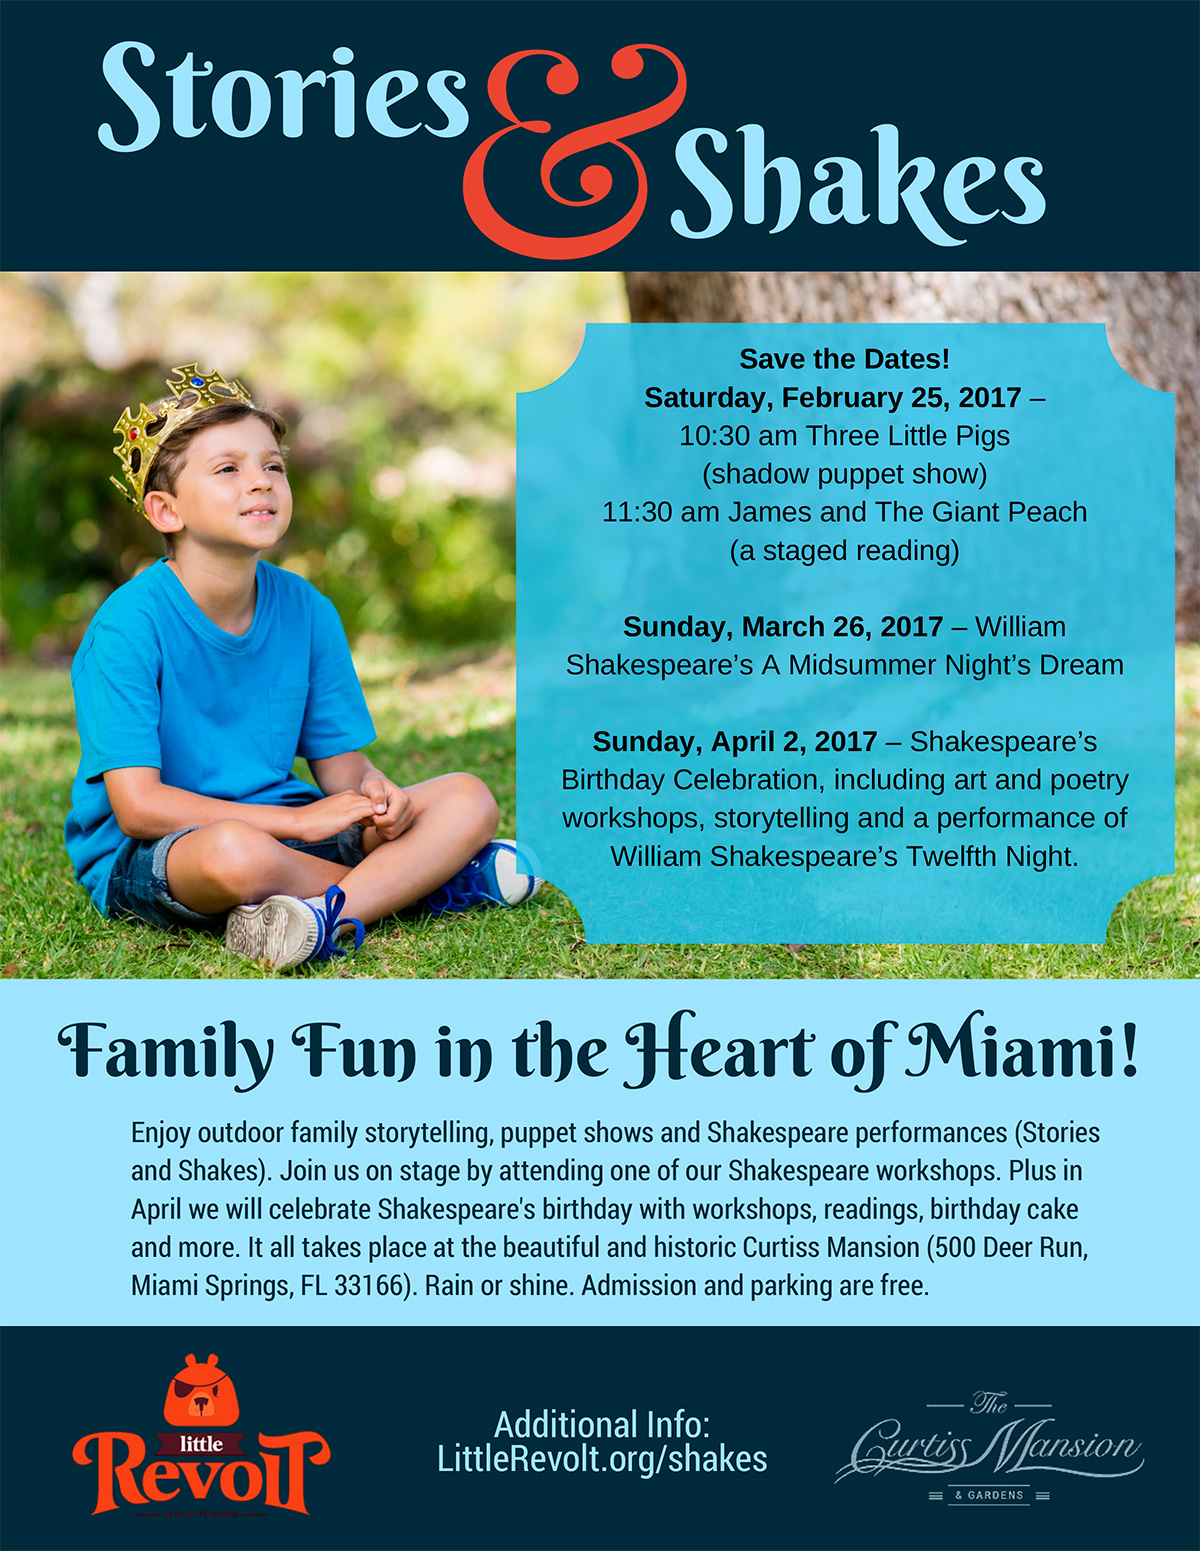 FAMILY-FUN-IN-THE-HEART-OF-MIAMI